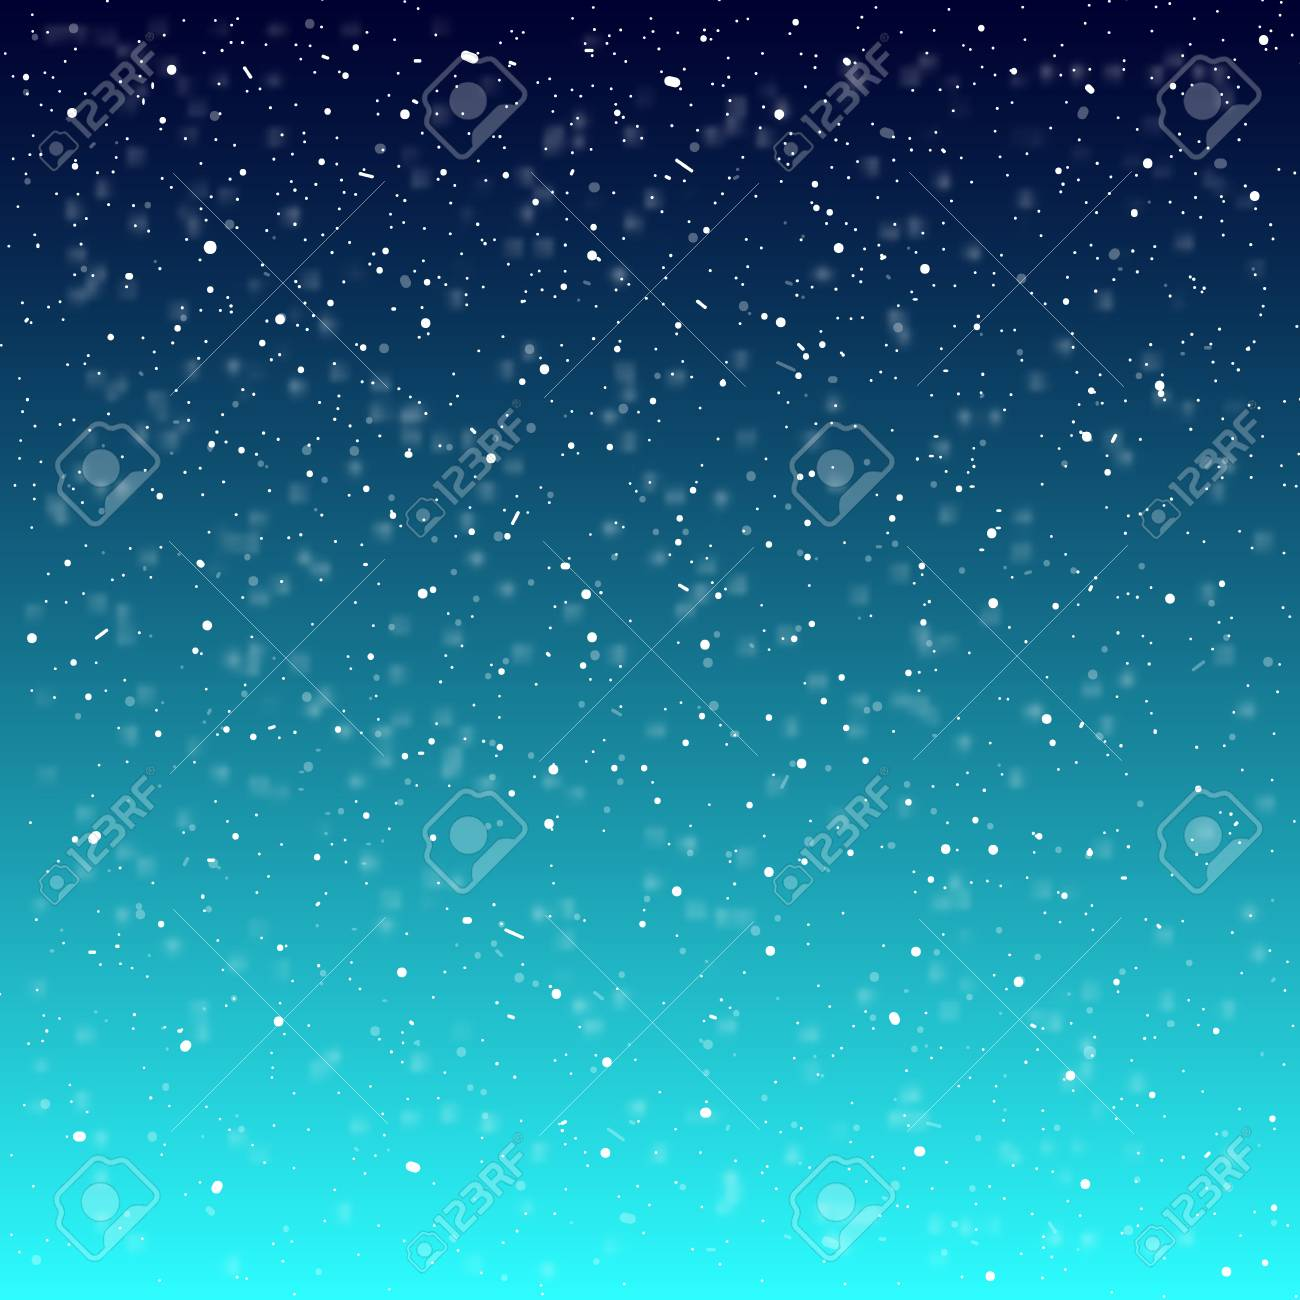 Falling snow background. Vector illustration with snowflakes. Winter snowing sky. Eps 10. - 126770192